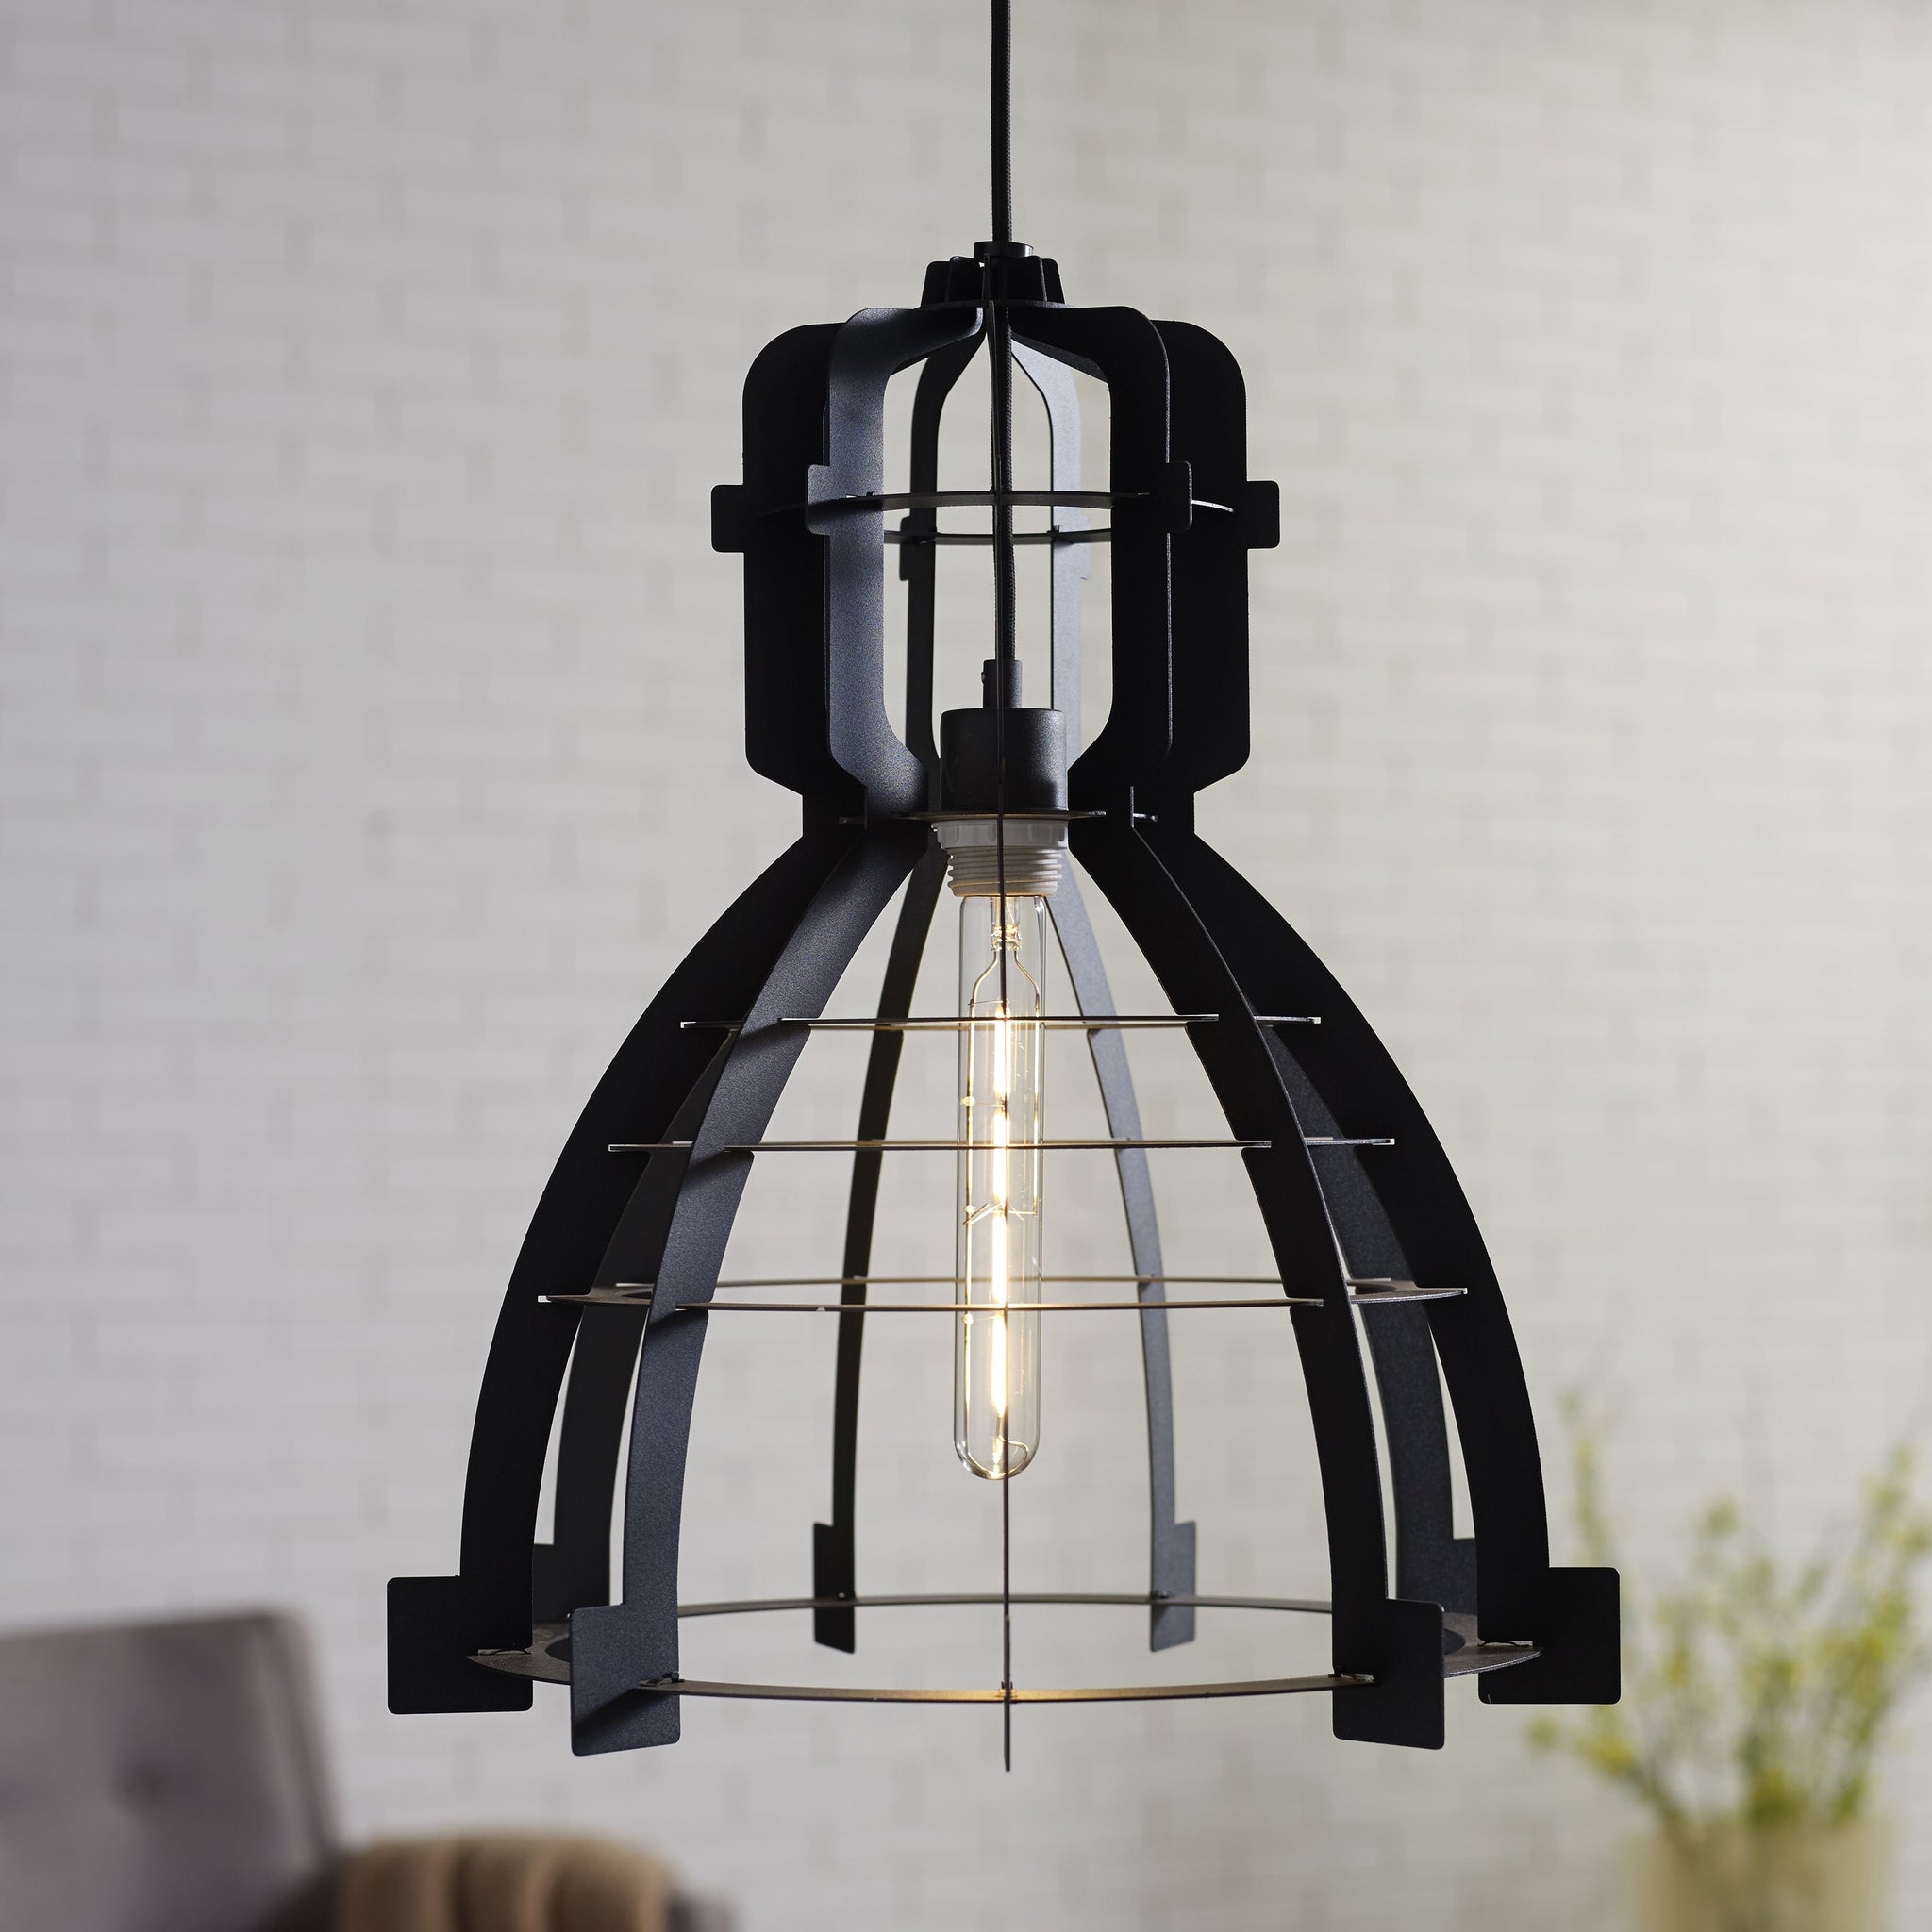 Factory Slice Pendant Light in Black